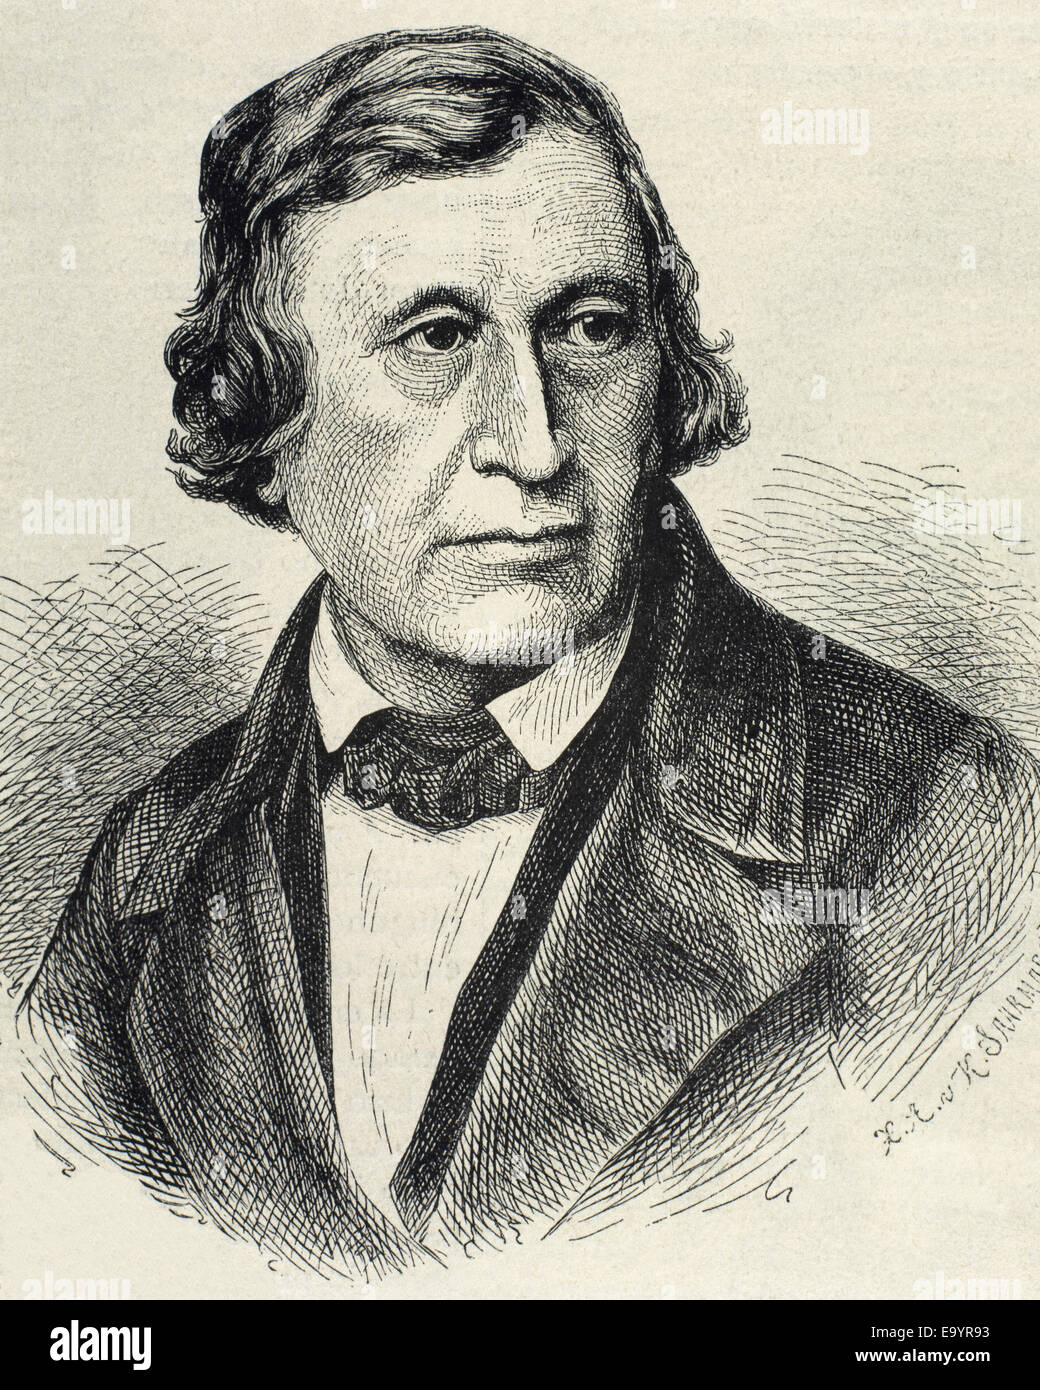 Wilhelm Grimm (1786-1859). German author, the younger of the Brothers